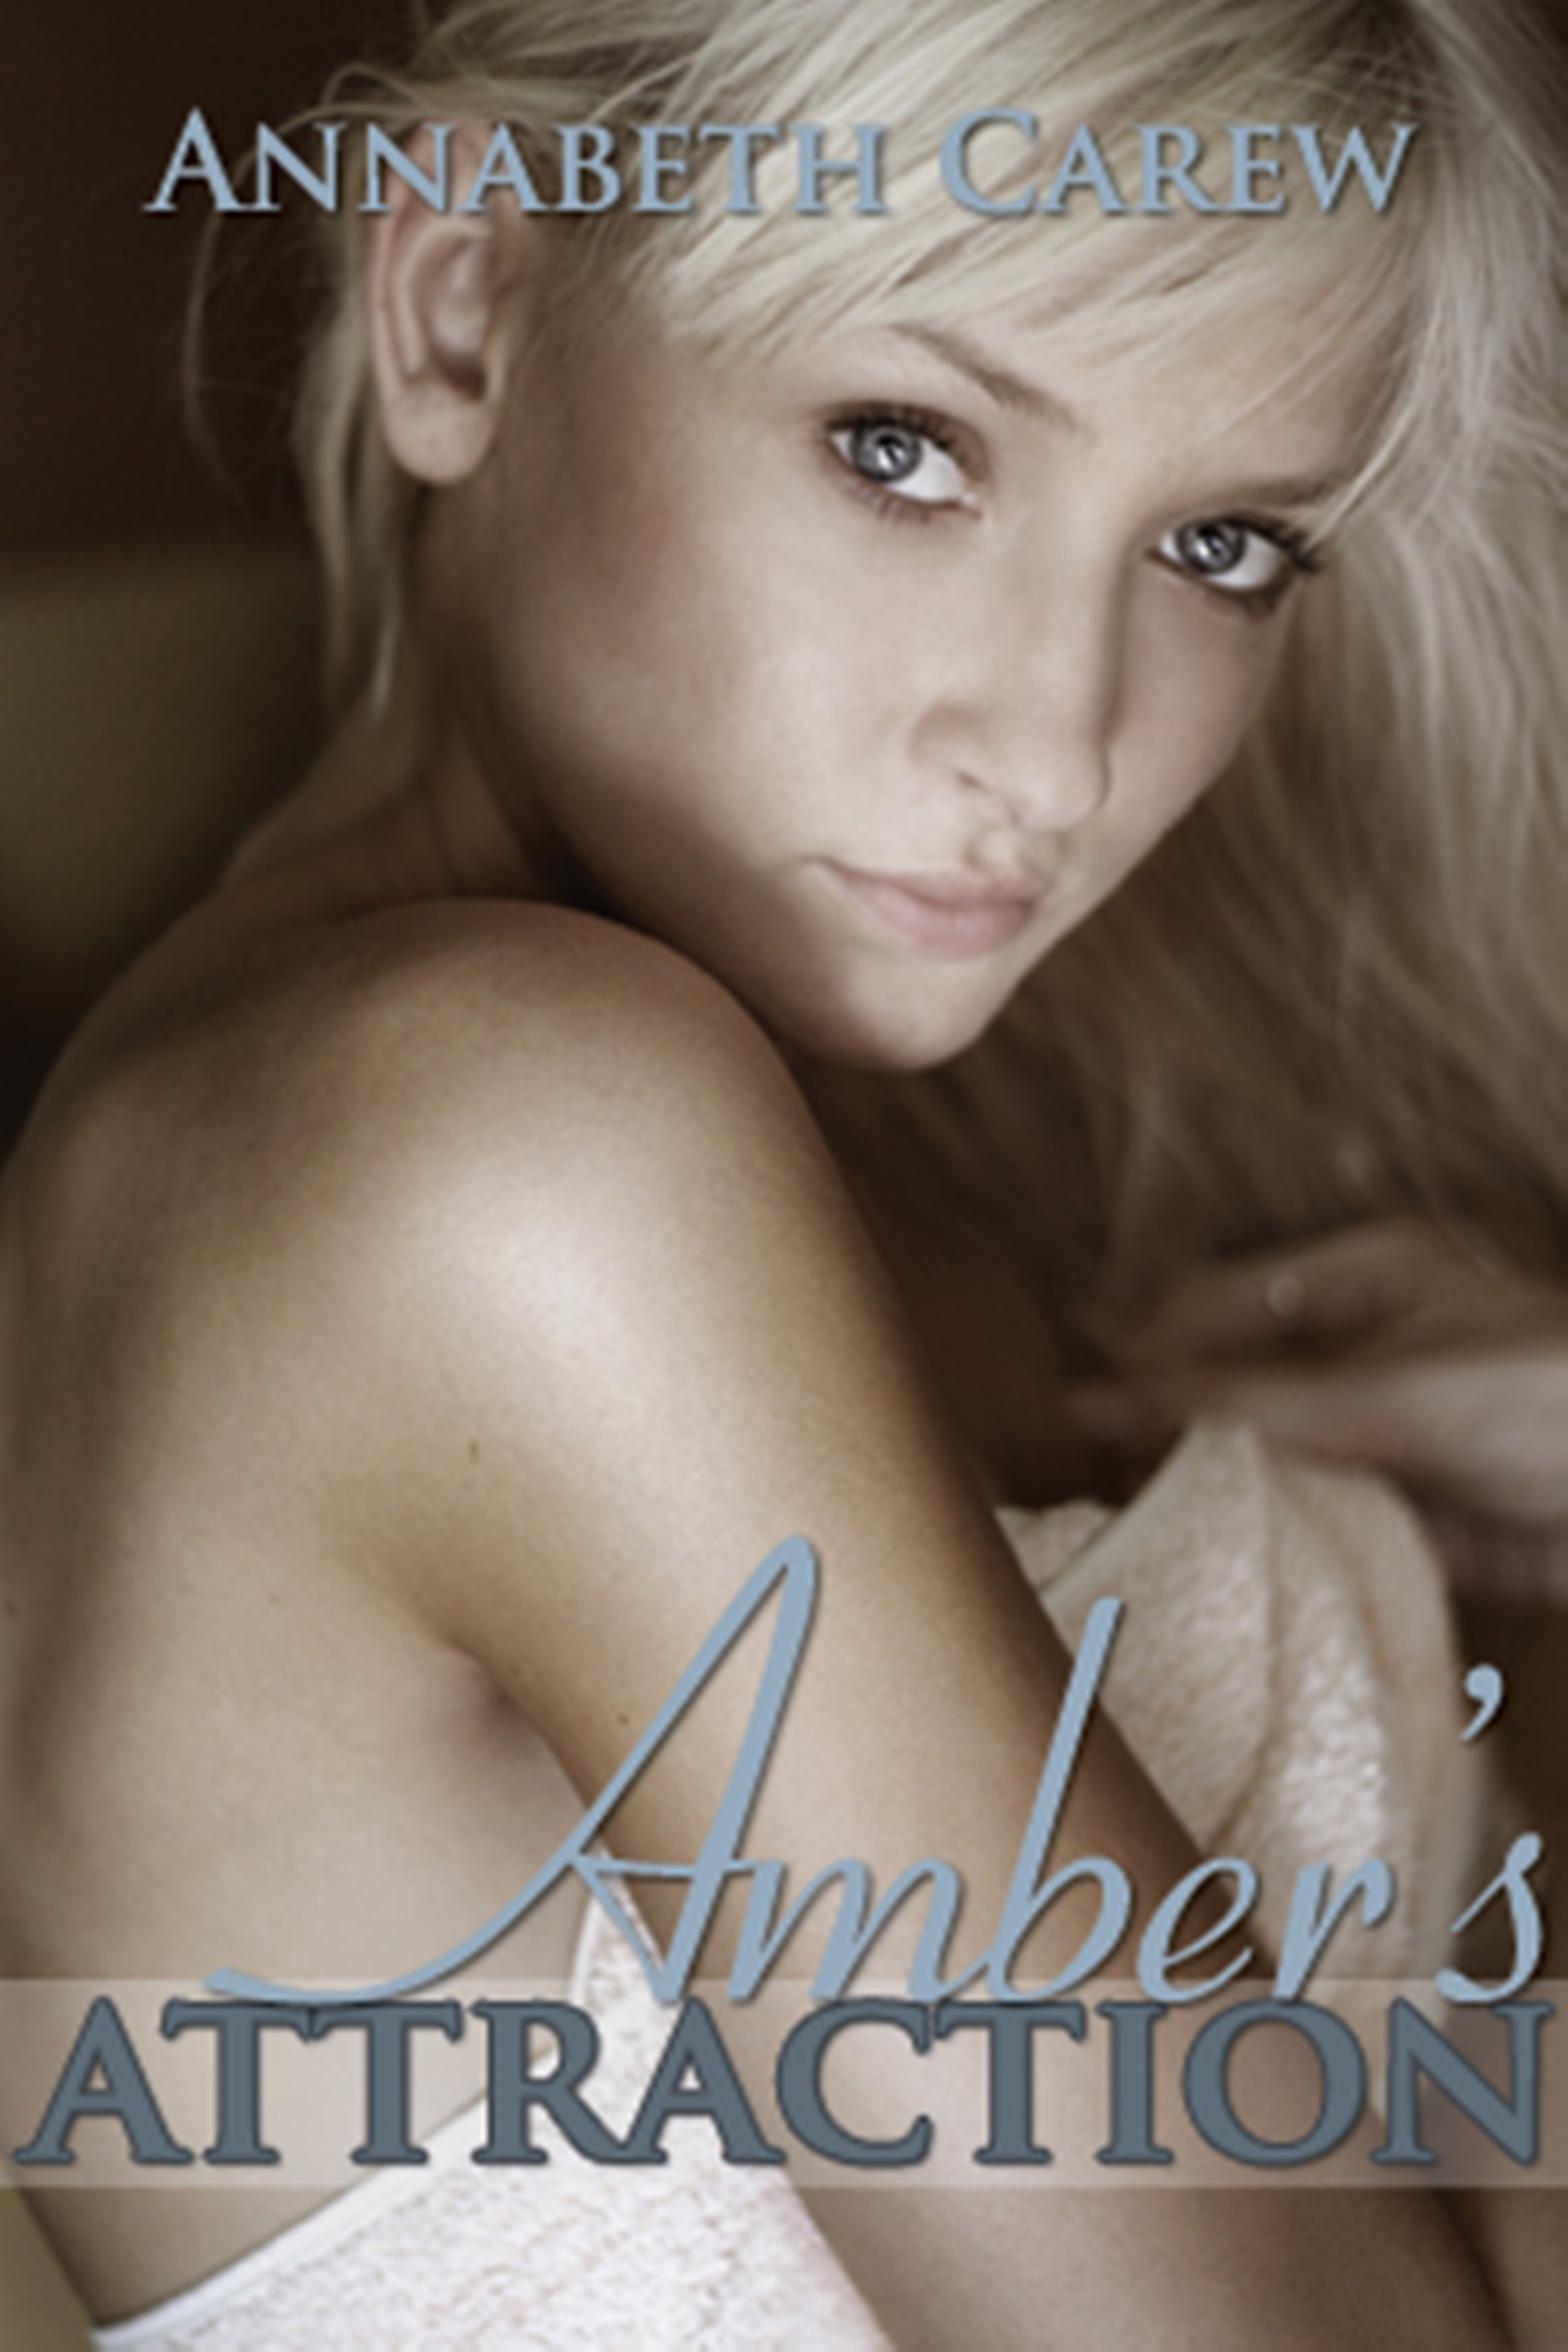 Annabeth Carew - Amber's Attraction